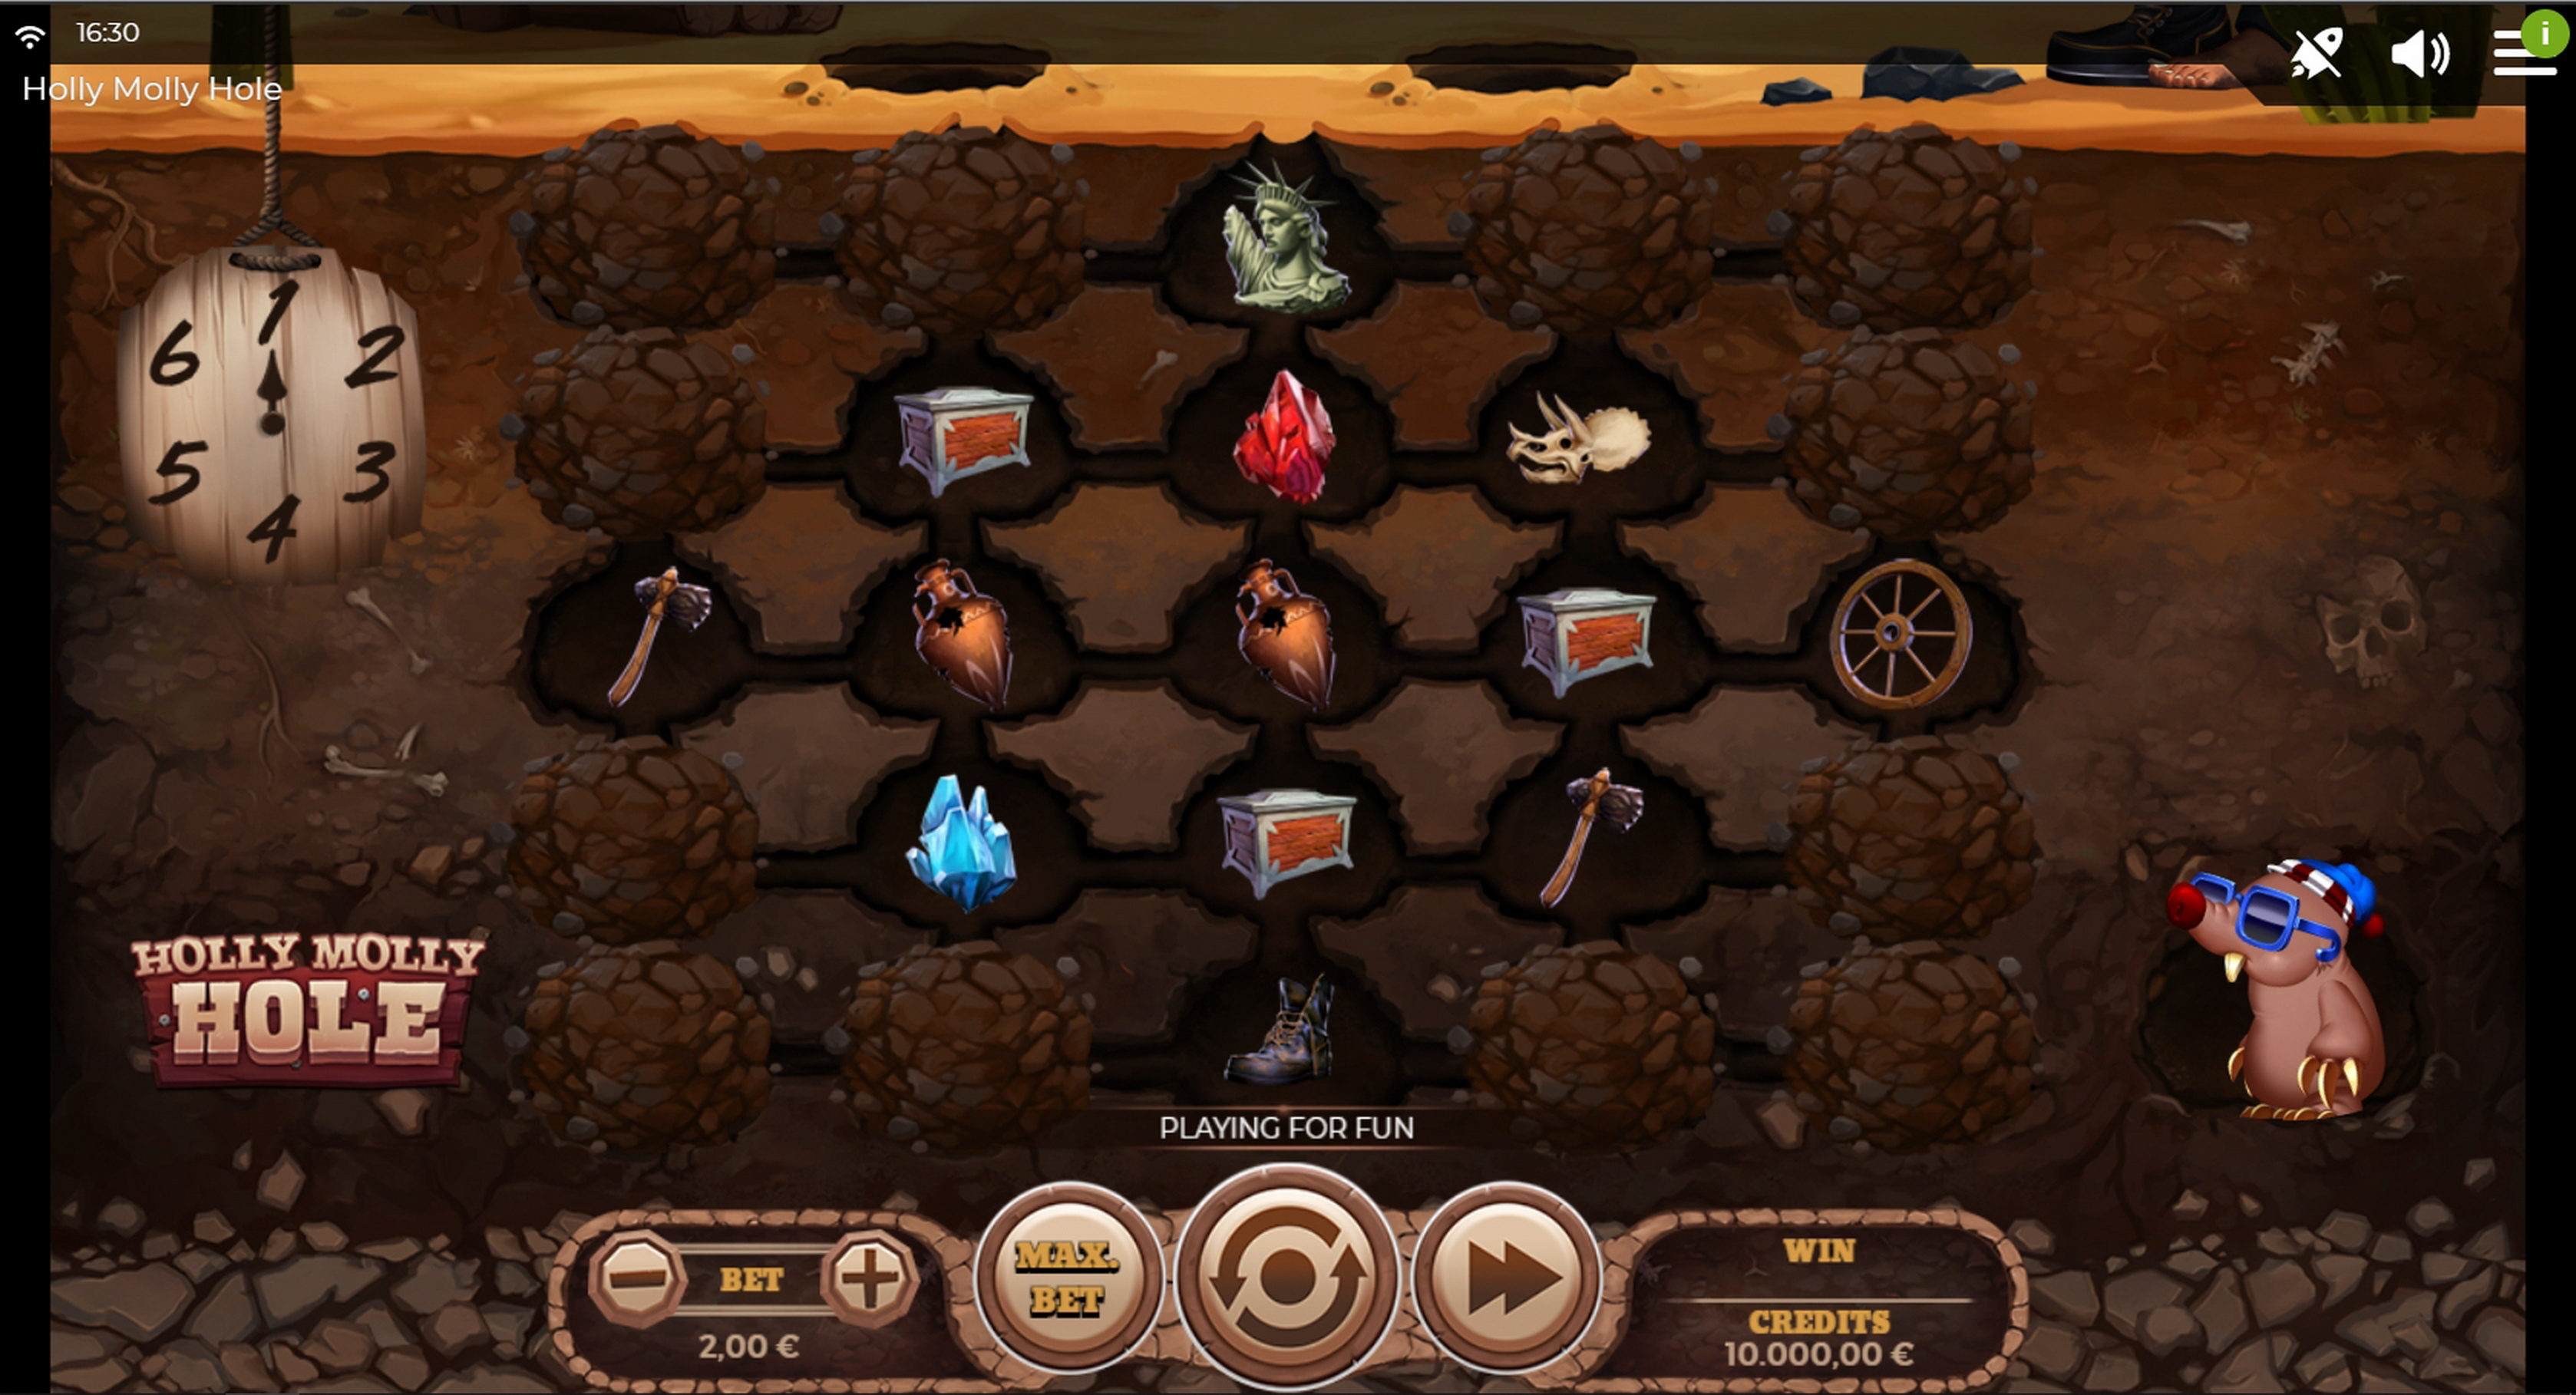 Reels in Holly Molly Hole Slot Game by Spinmatic